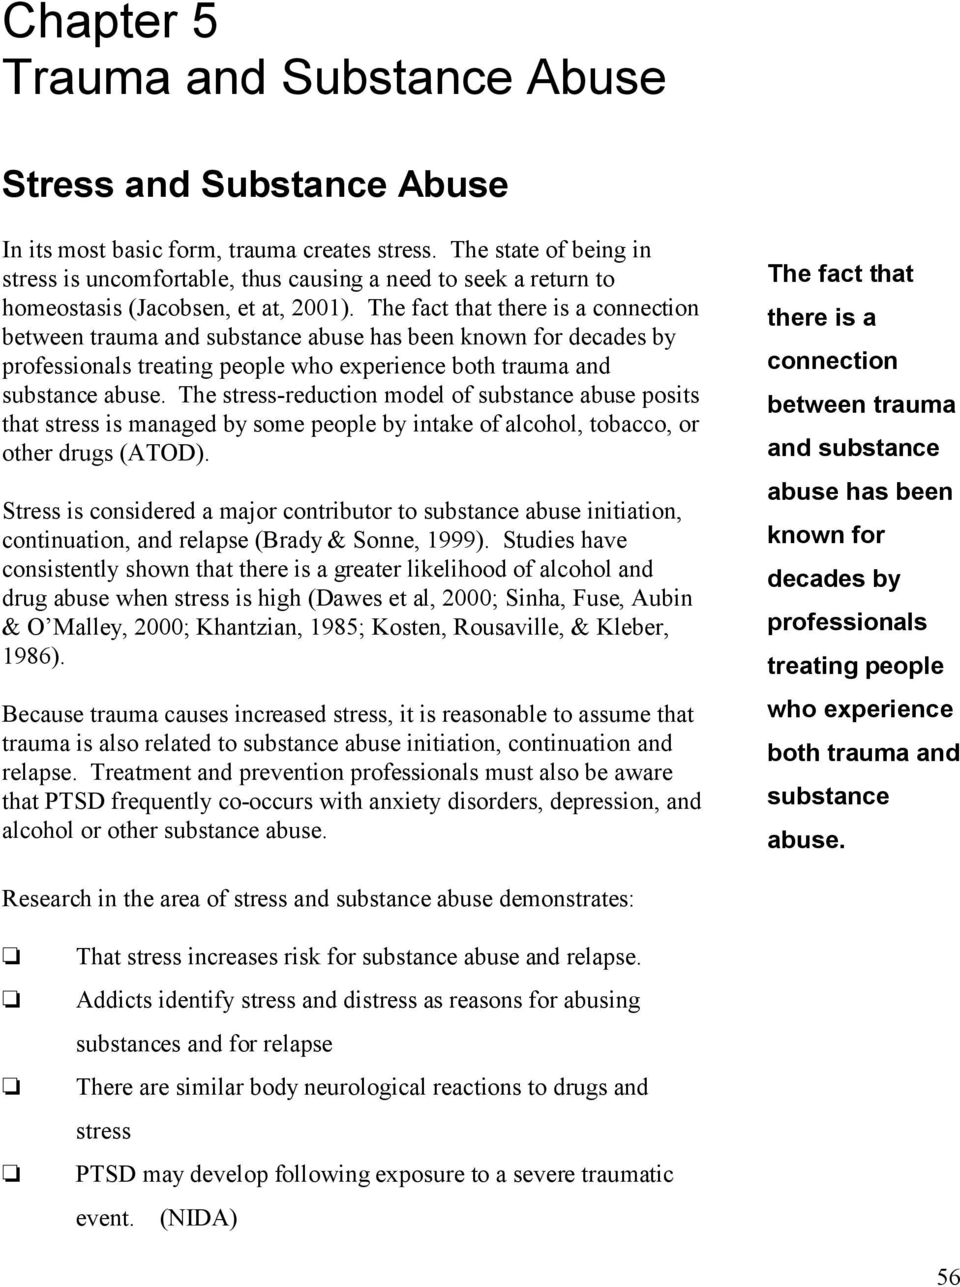 The fact that there is a connection between trauma and substance abuse has been known for decades by professionals treating people who experience both trauma and substance abuse.